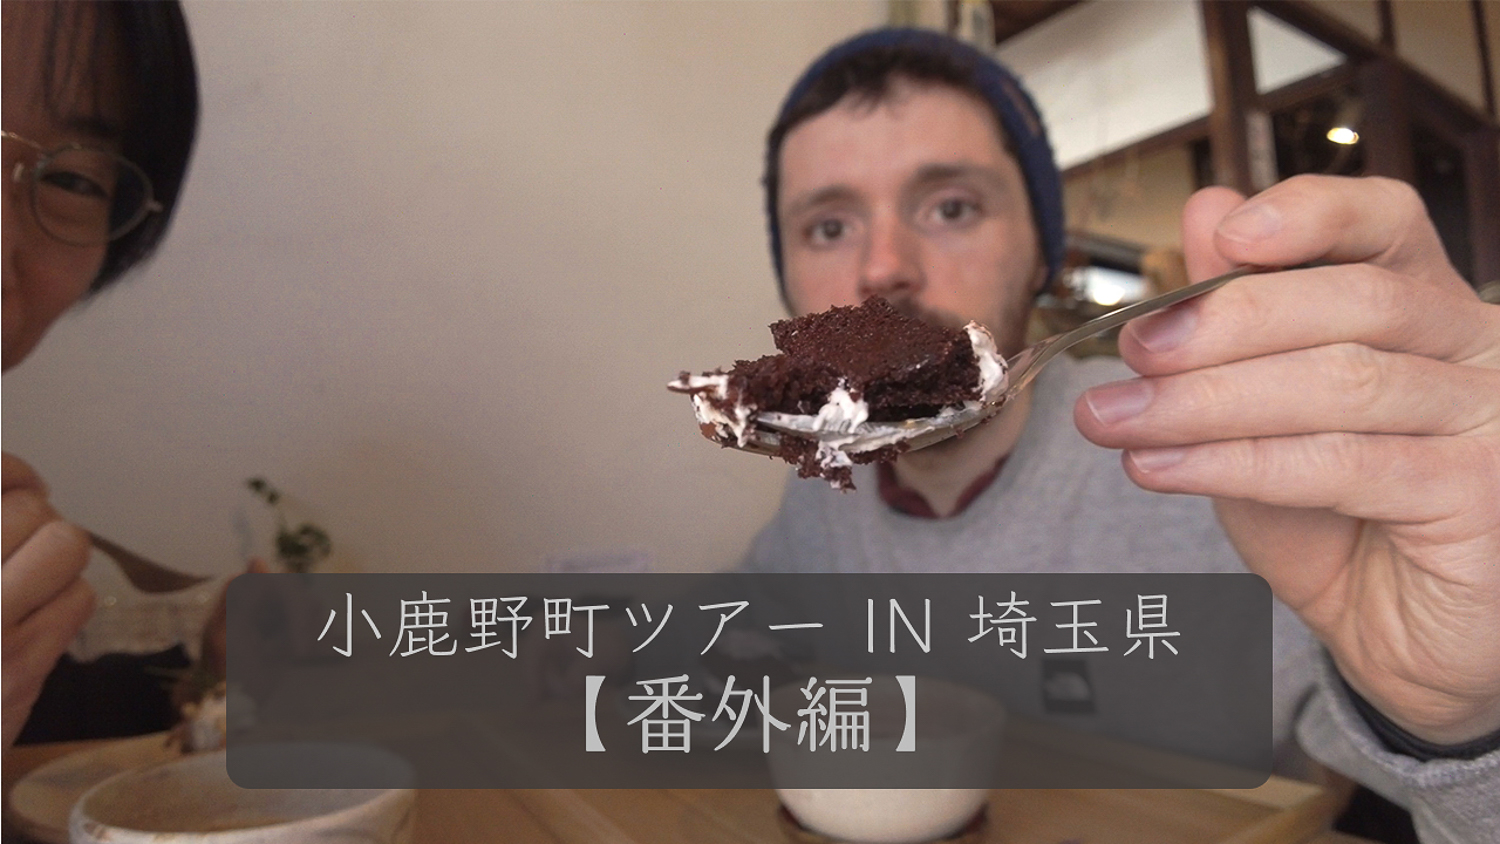 Man showing cake on a fork